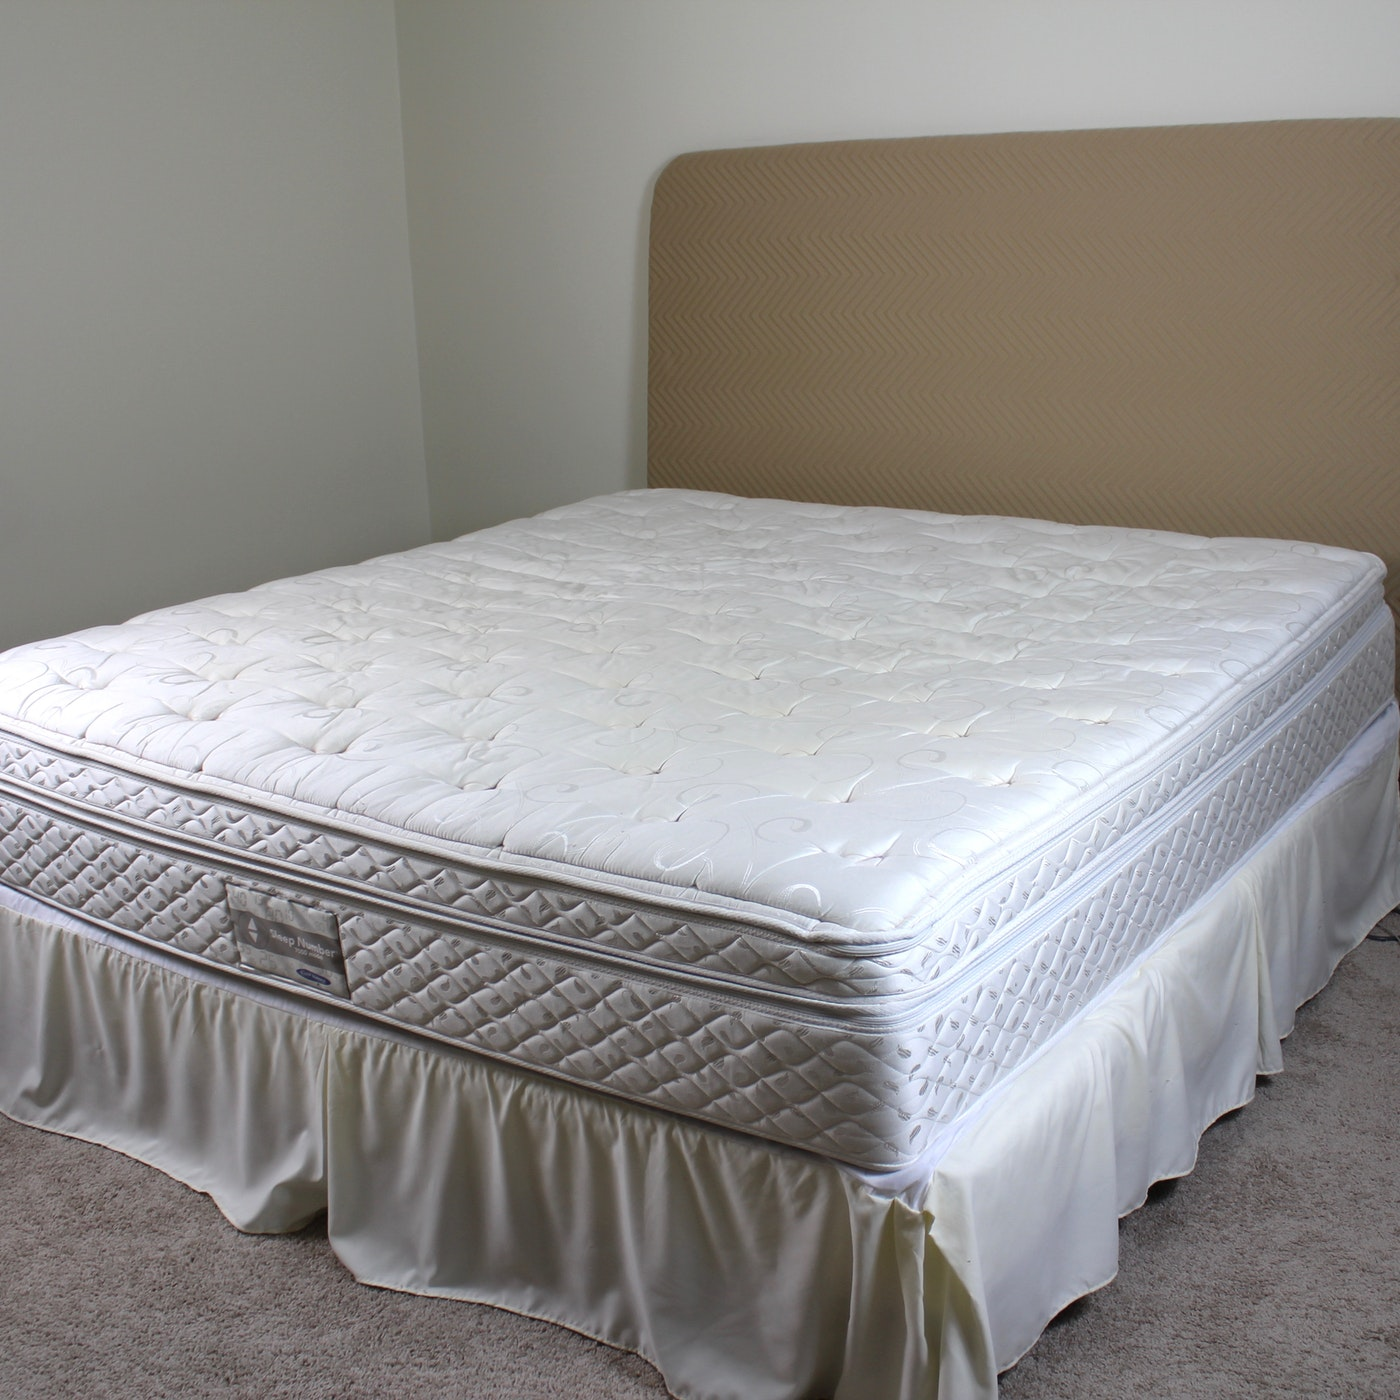 King Size Sleep Number Bed With Upholstered Padded